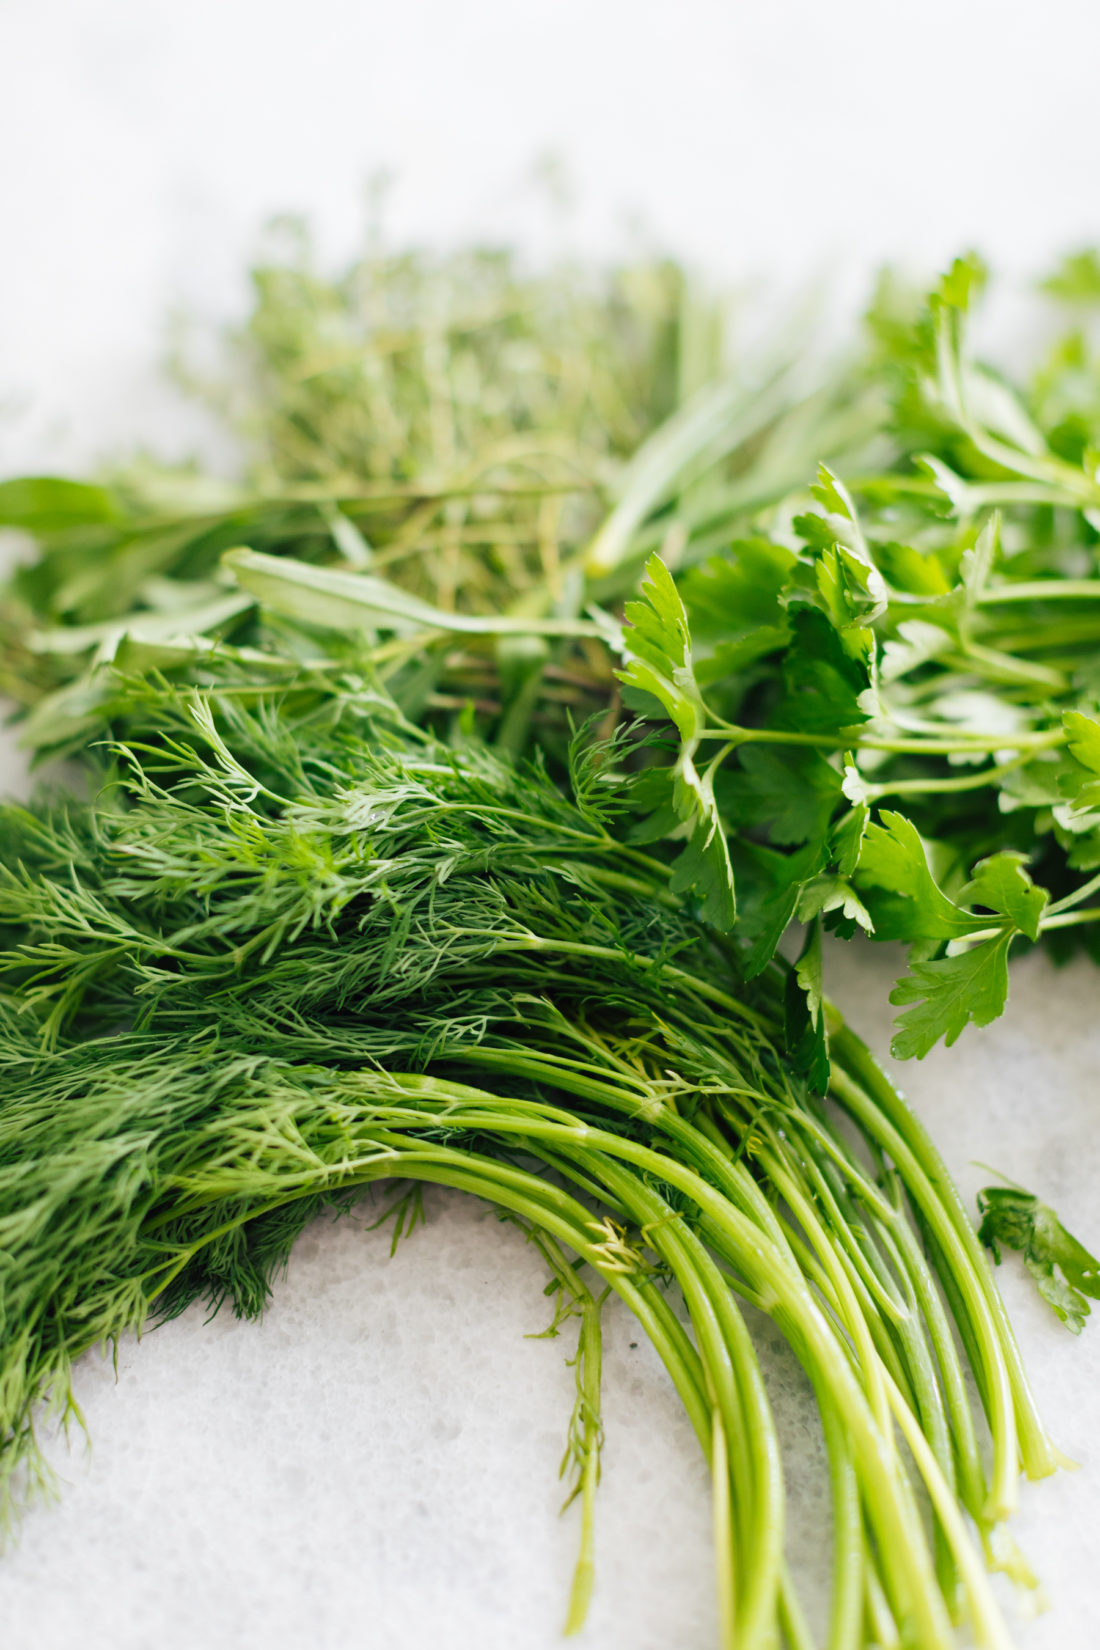 Dill on a table before chopping